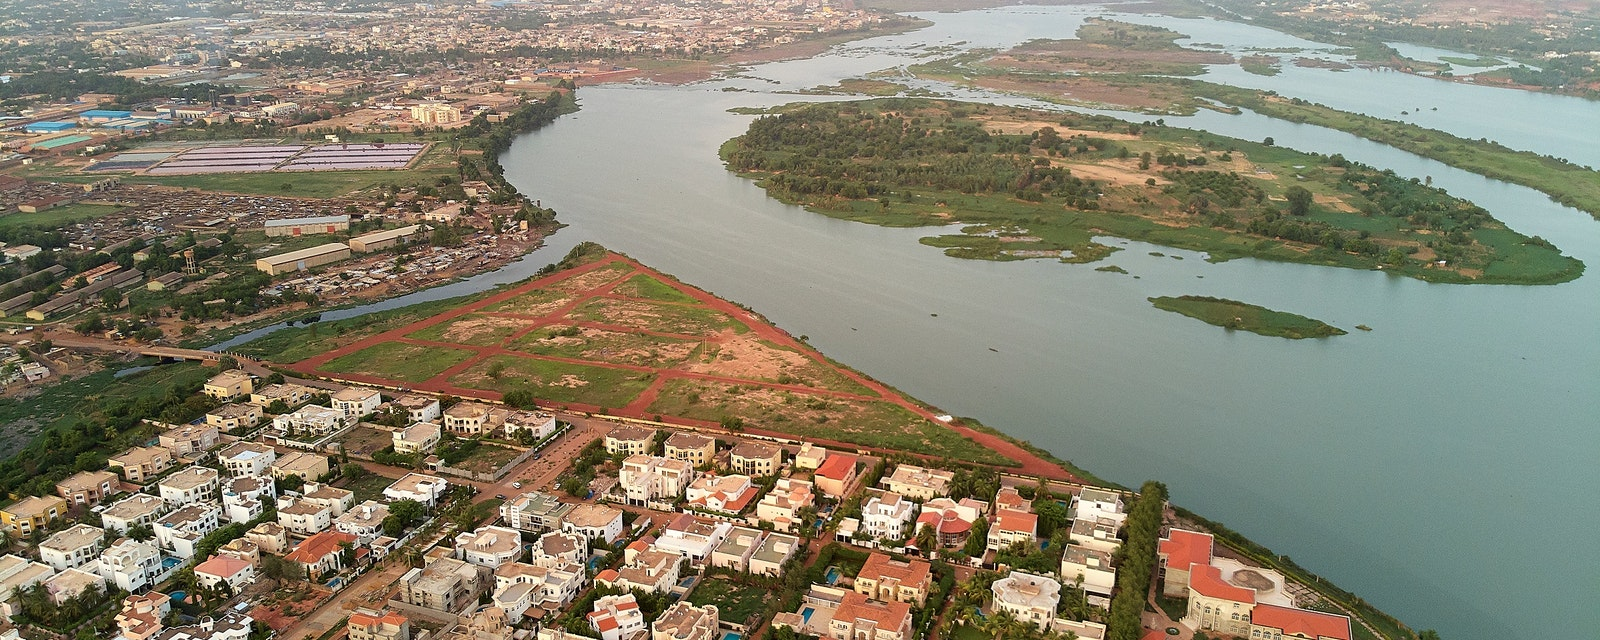 Bamako,Is,The,Capital,And,Largest,City,Of,Mali,,With